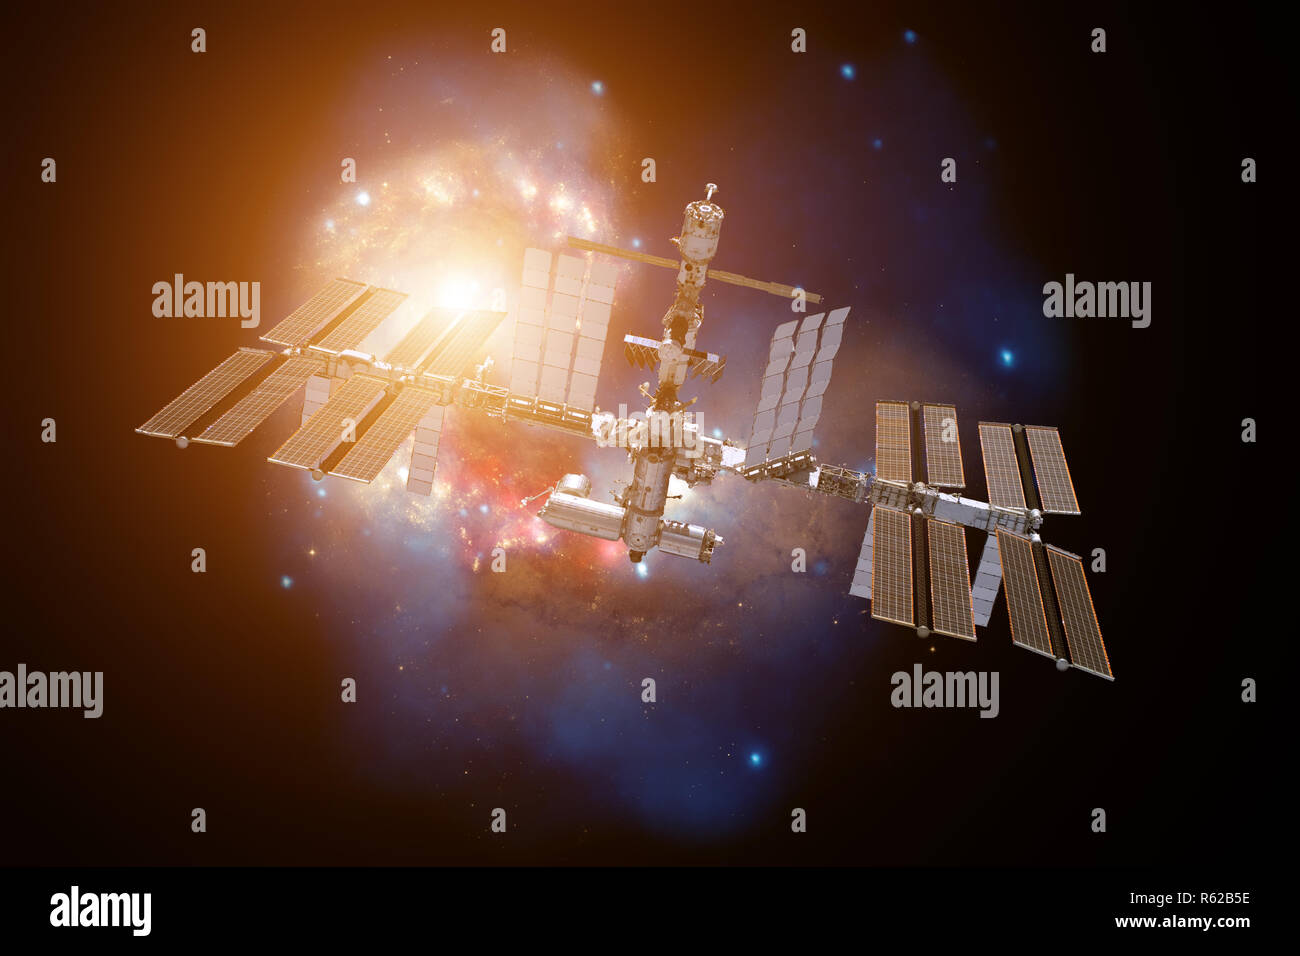 International Space Station over a galaxy. - Stock Image